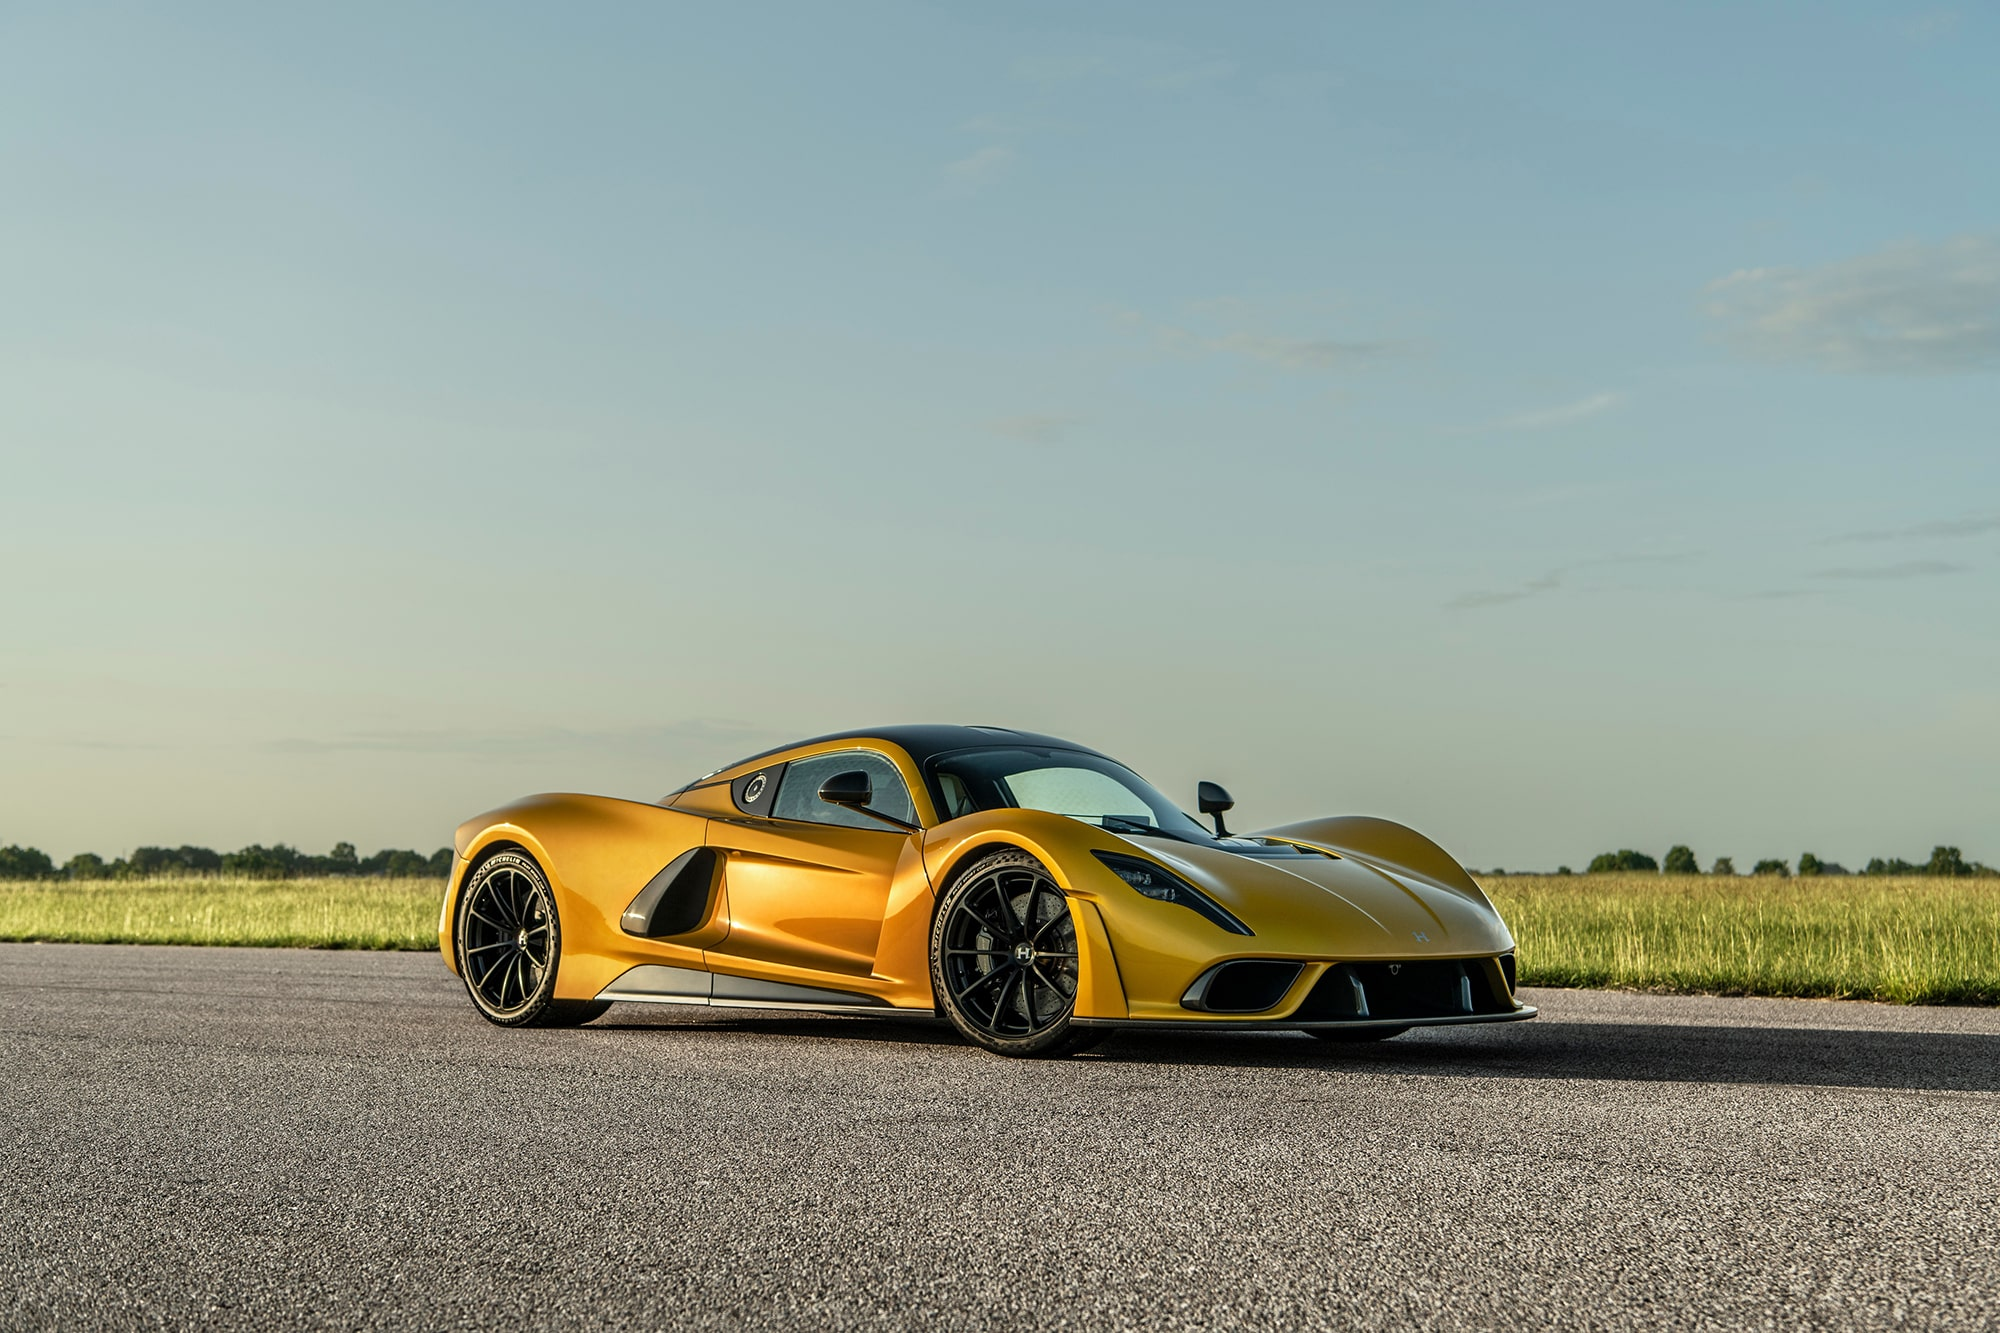 Hennessey Venom F5 Chassis Number 3 in Mojave Gold